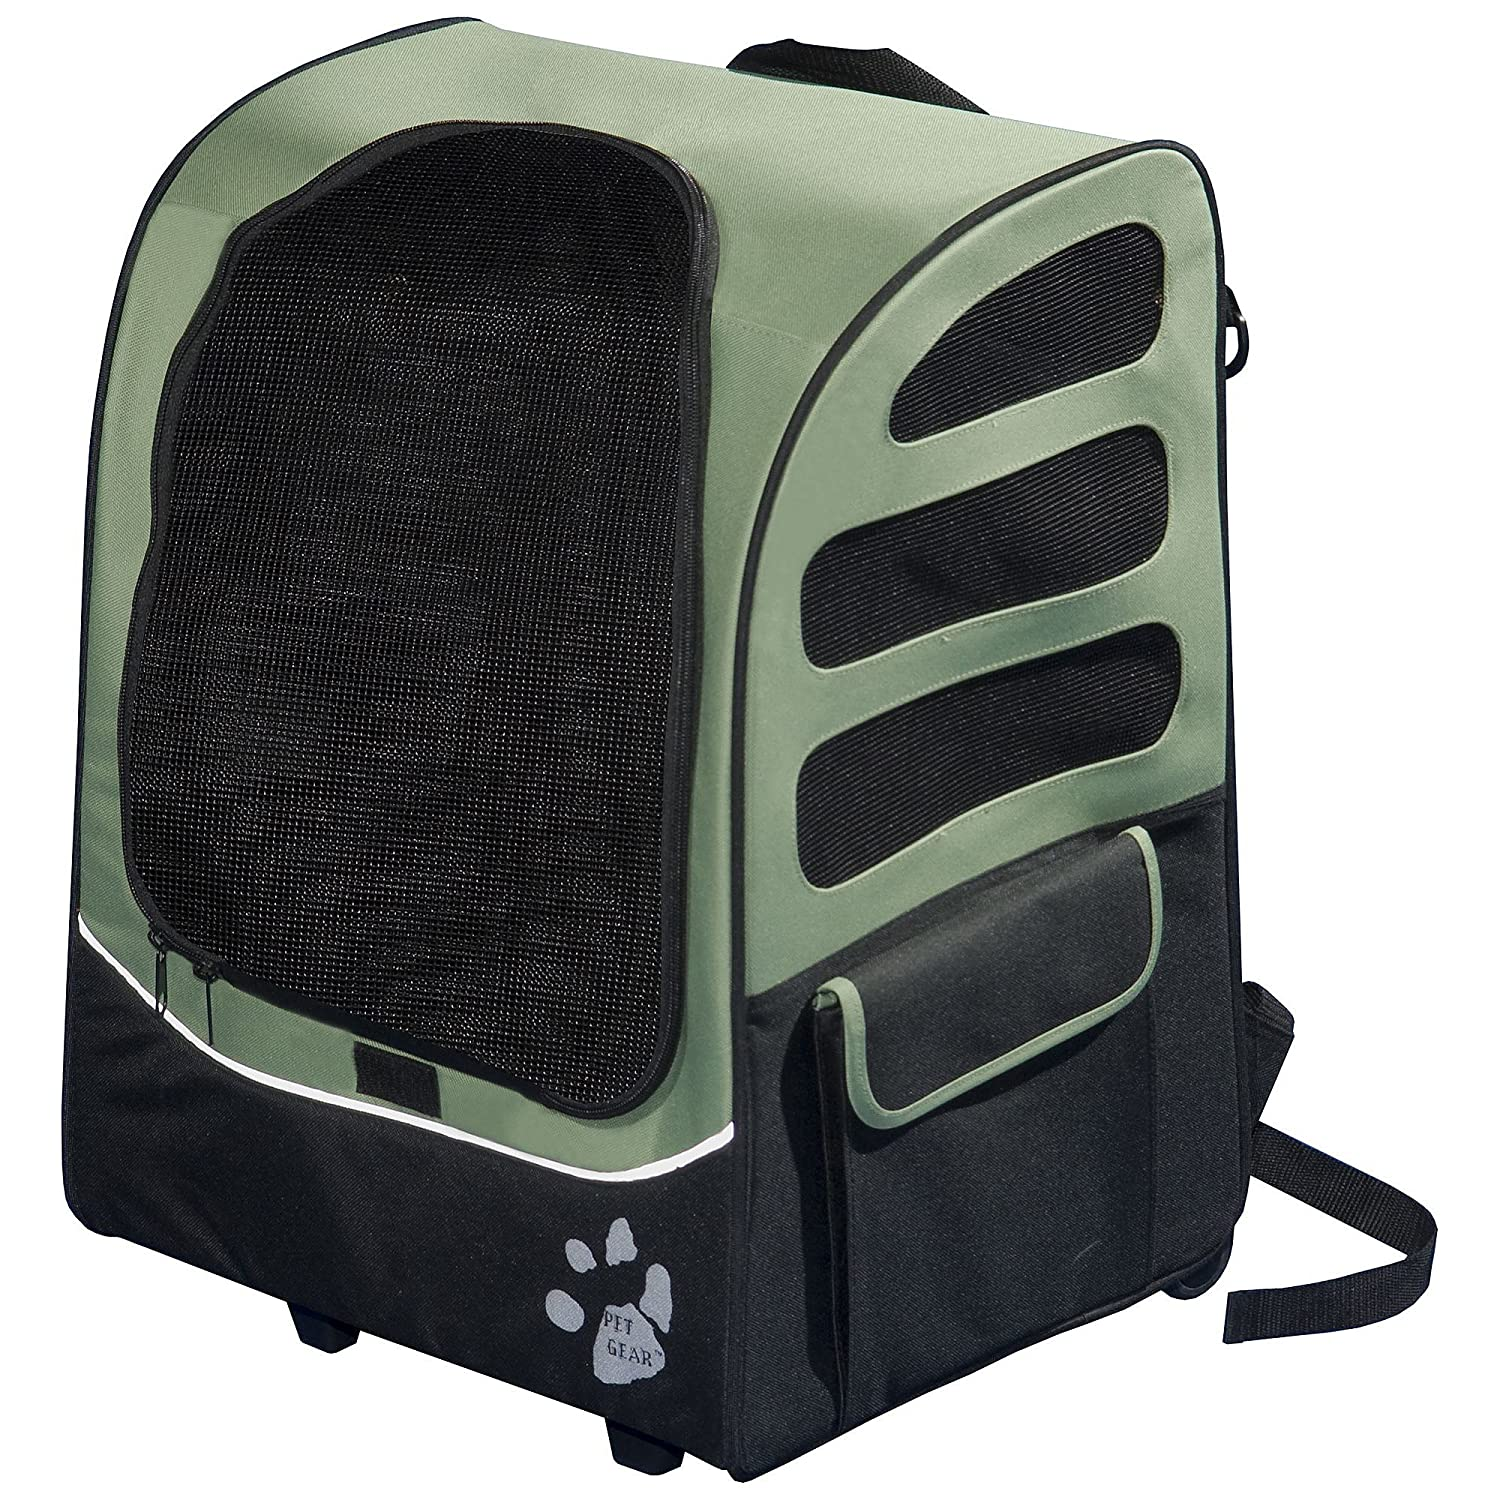 Backpack Carrier For Cats Backpack Carrier For Cats